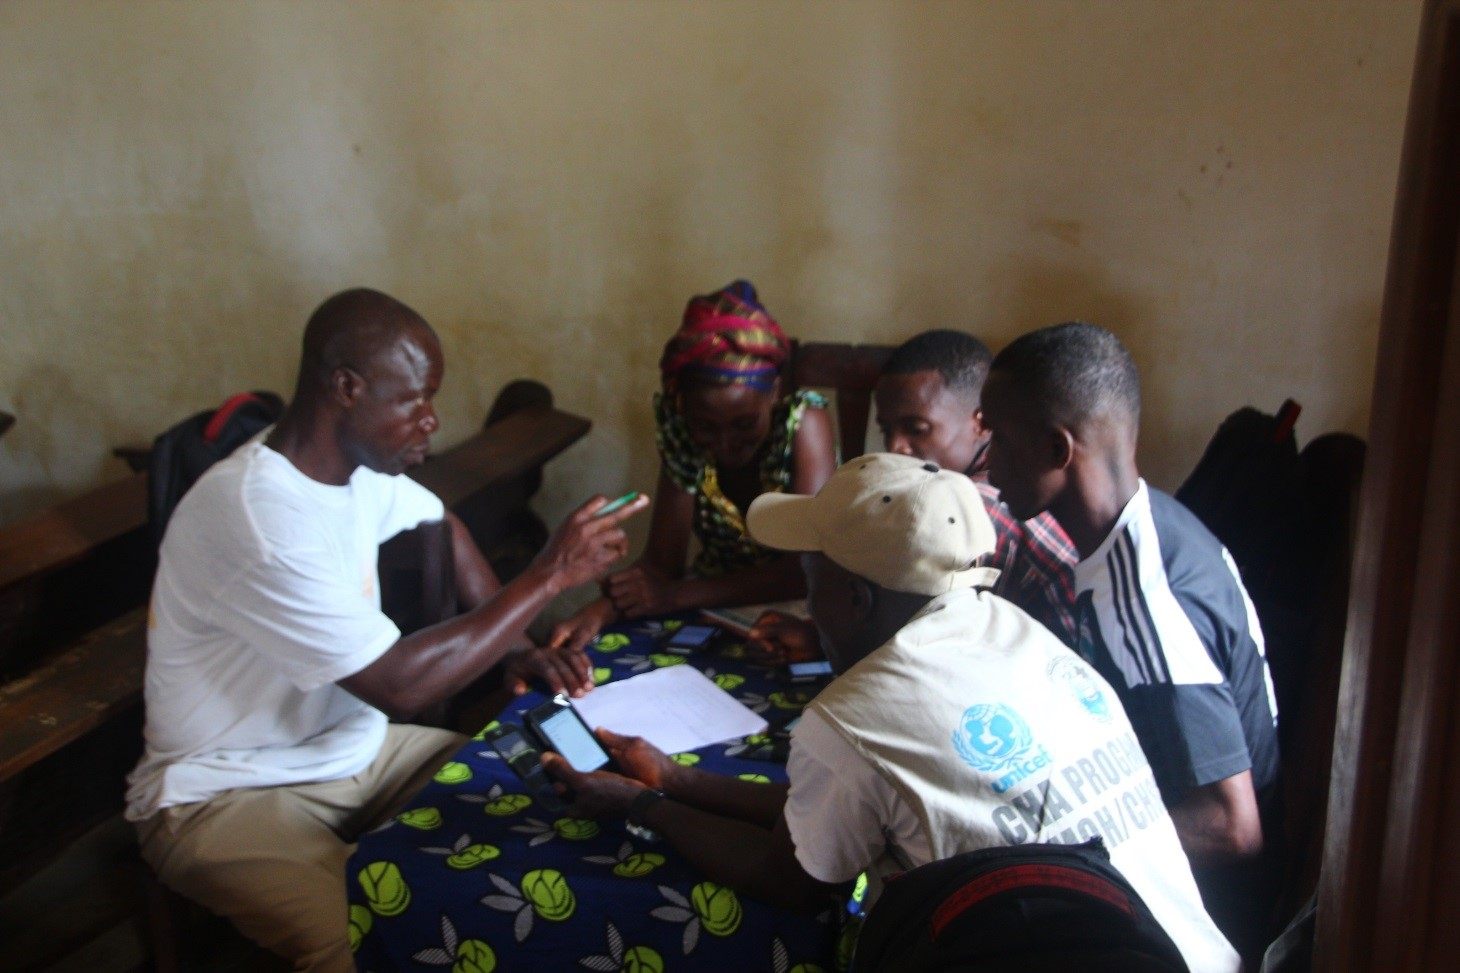 Training community health workers to use smartphones for data collection